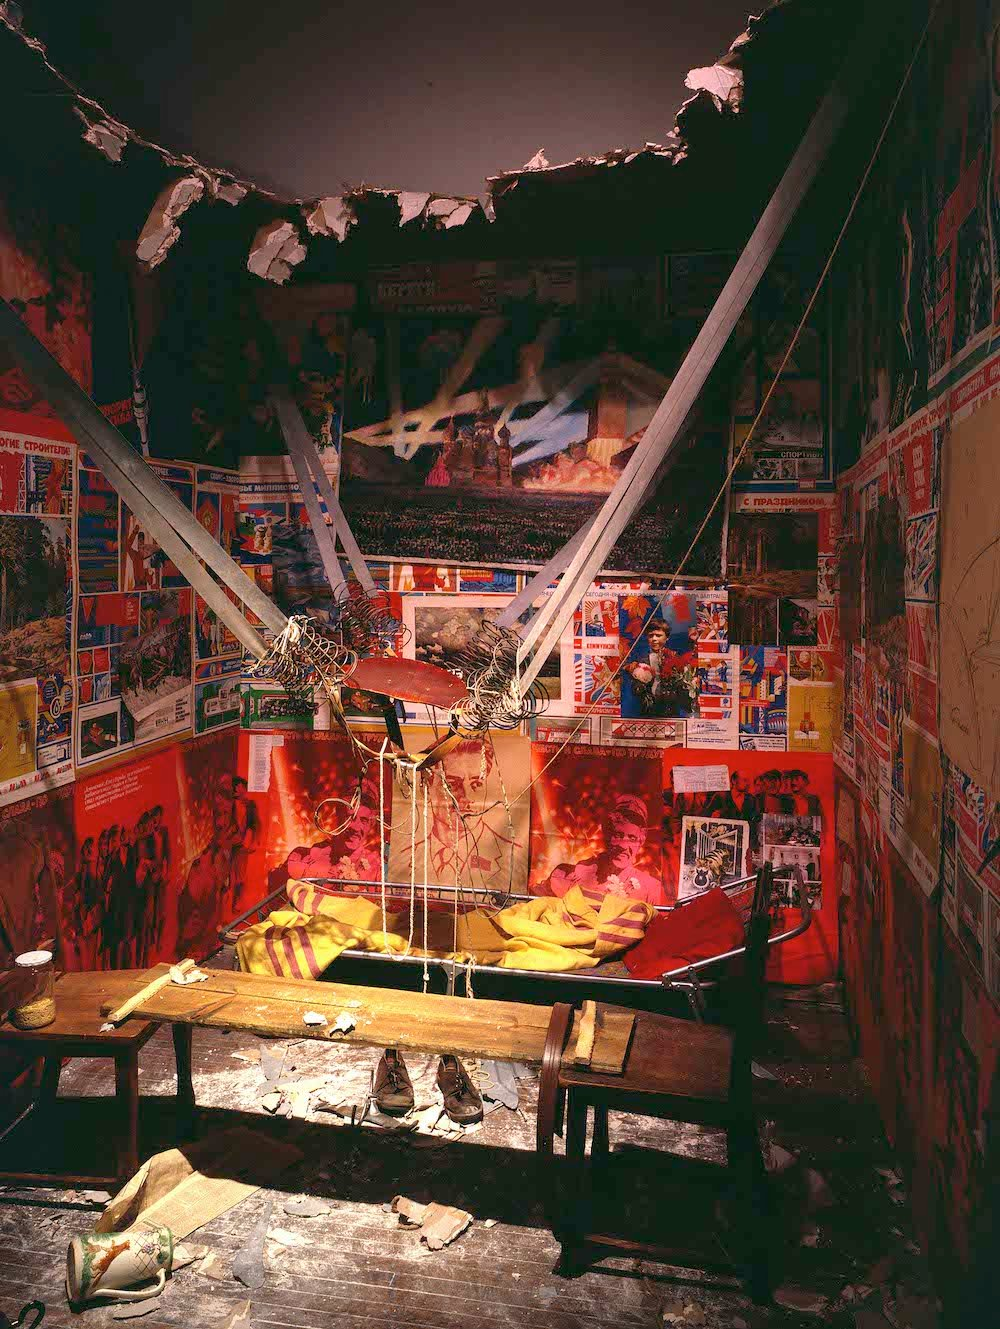 <em>The Man Who Flew Into Space From His Apartment</em>, 1985, by Ilya Kabakov